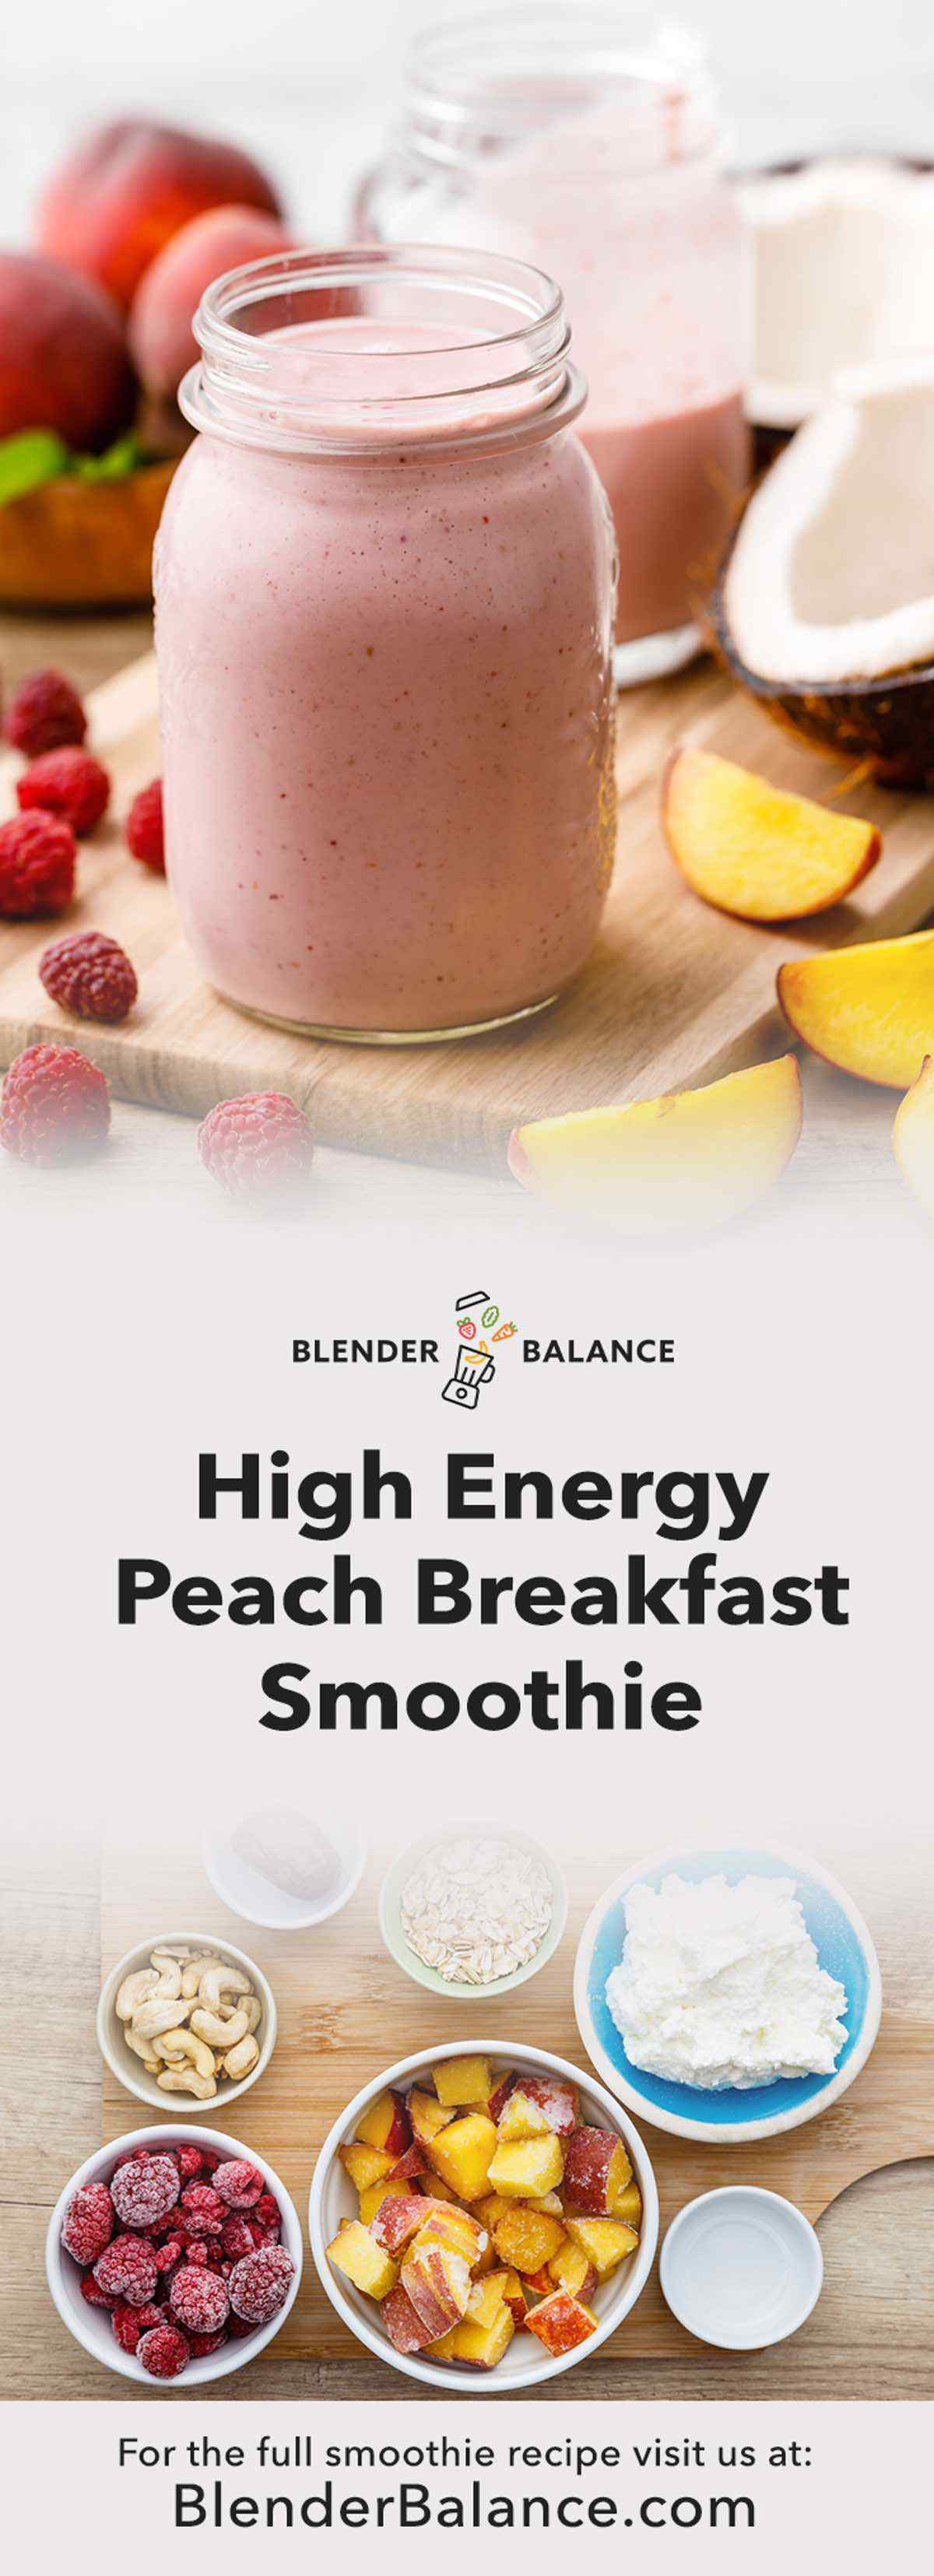 Peach Breakfast Smoothie